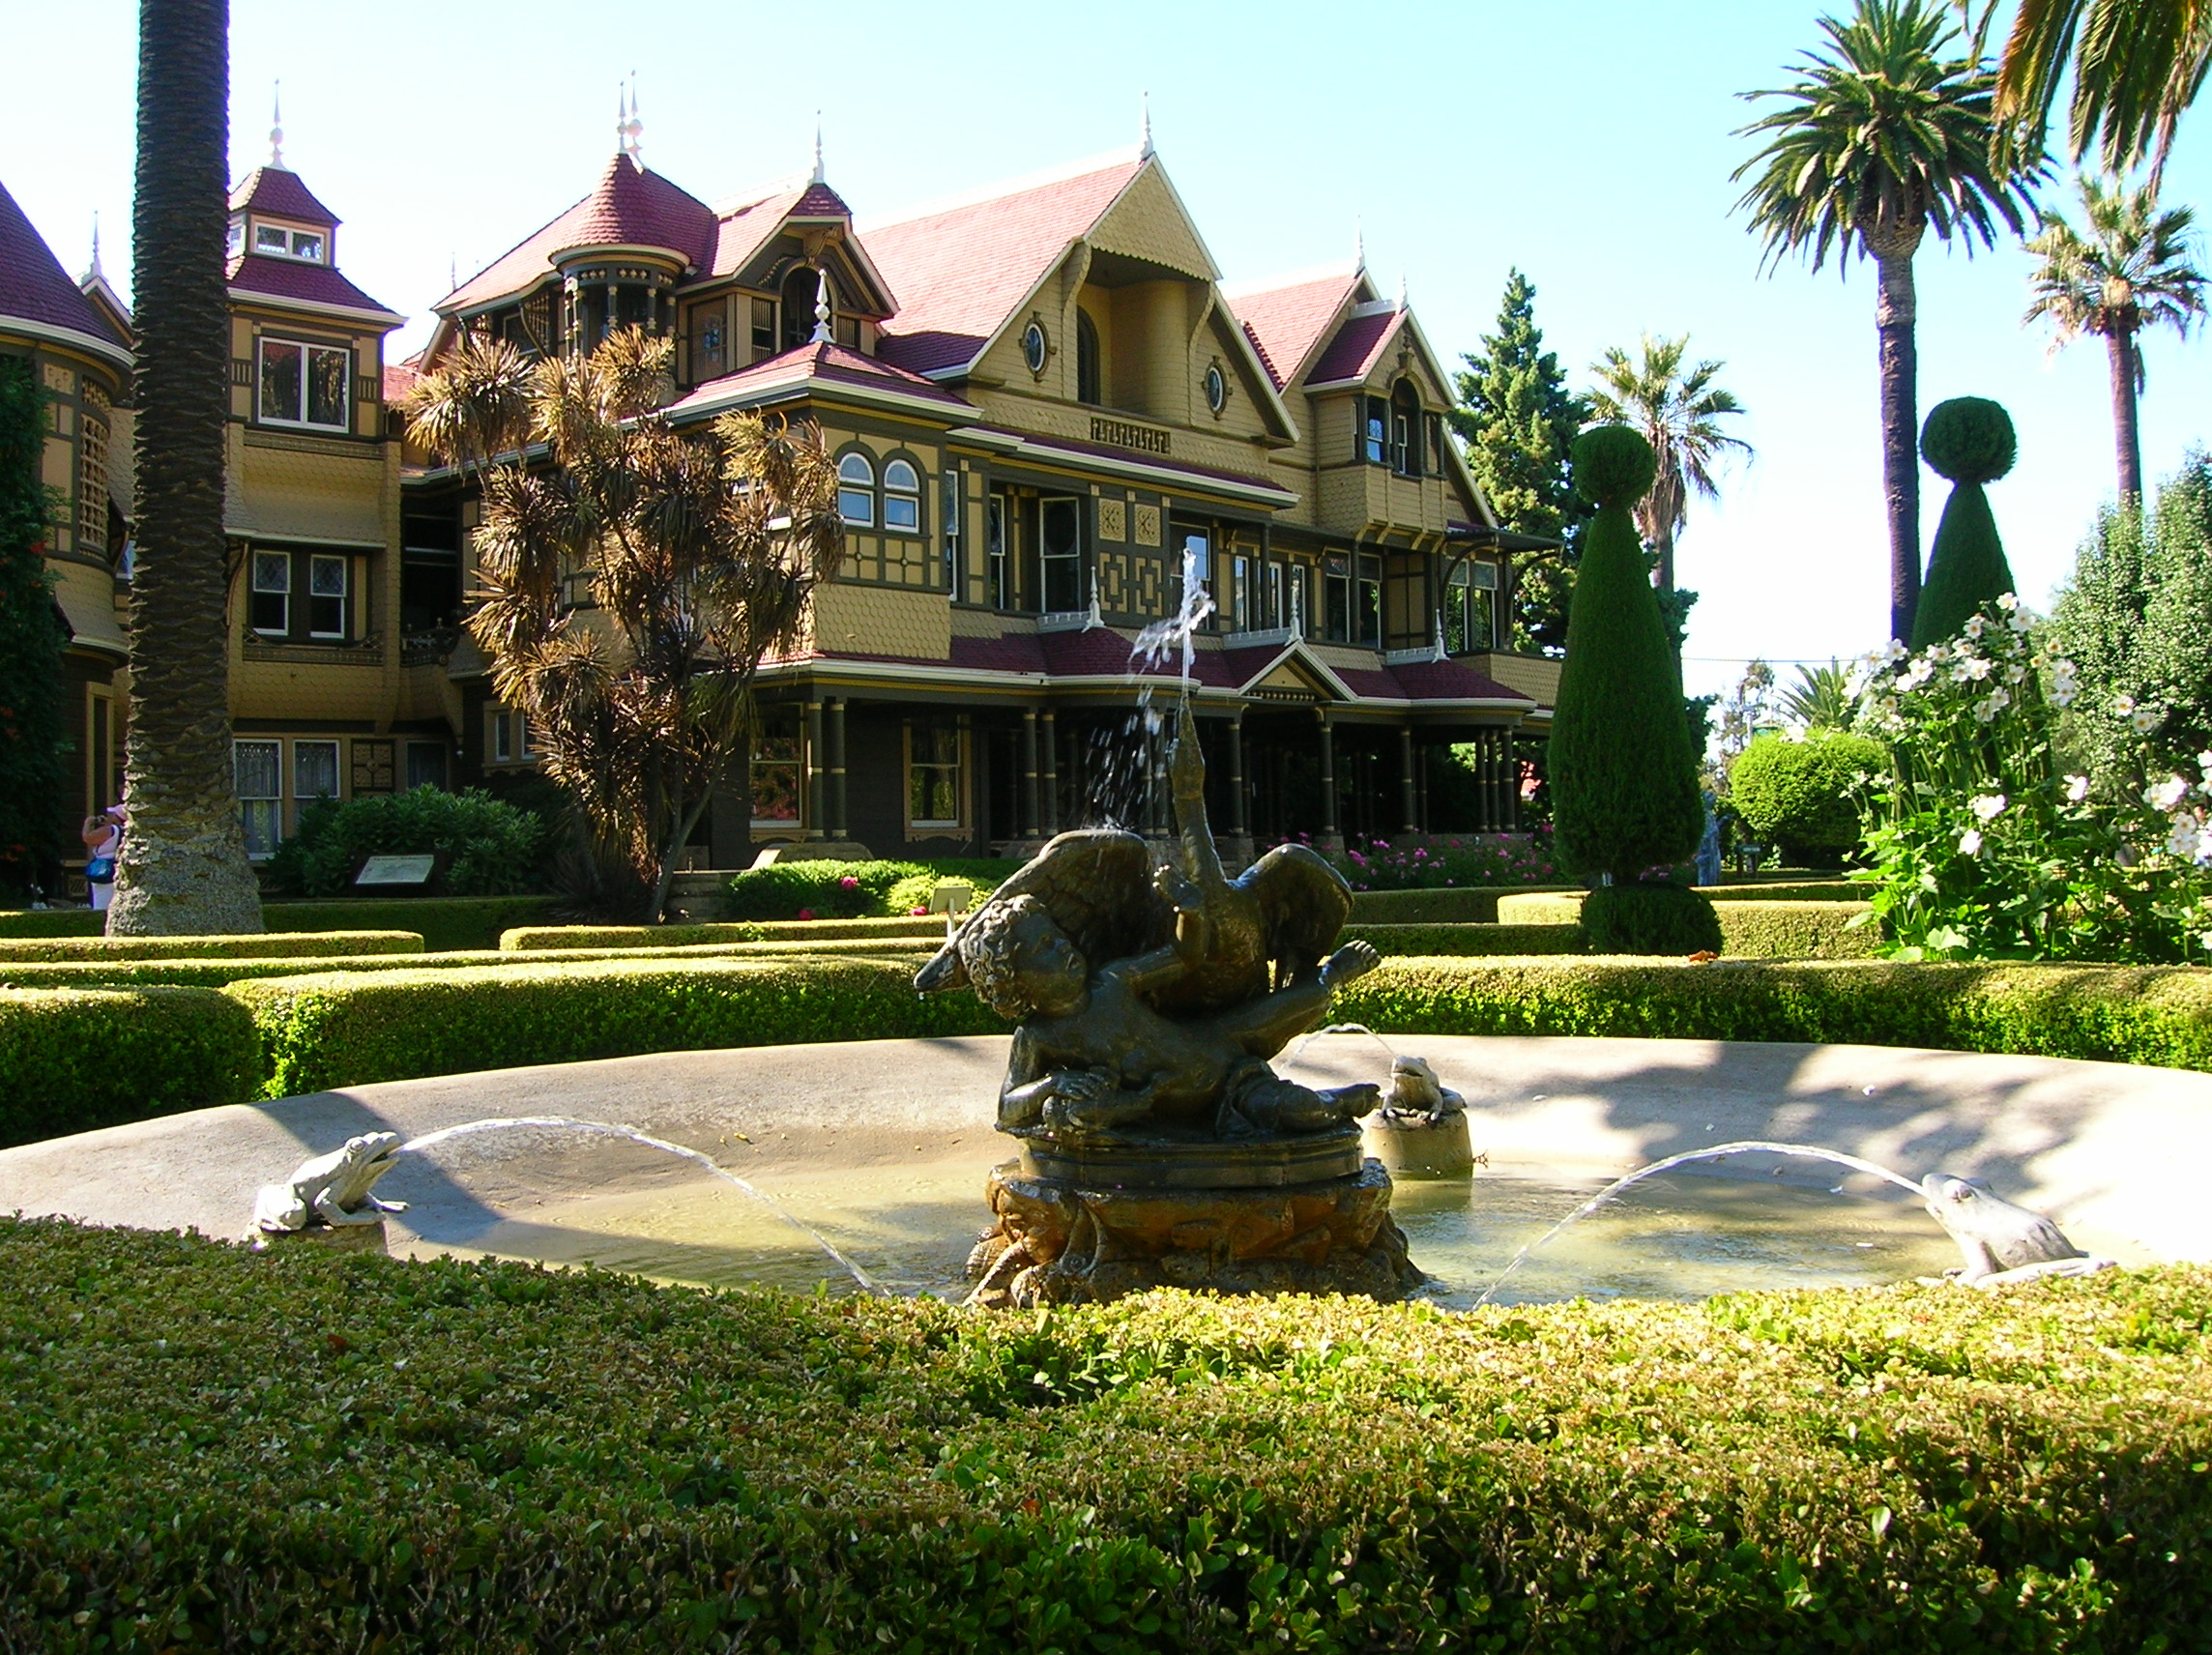 Winchester mystery house maria alexander for San francisco mansion tour